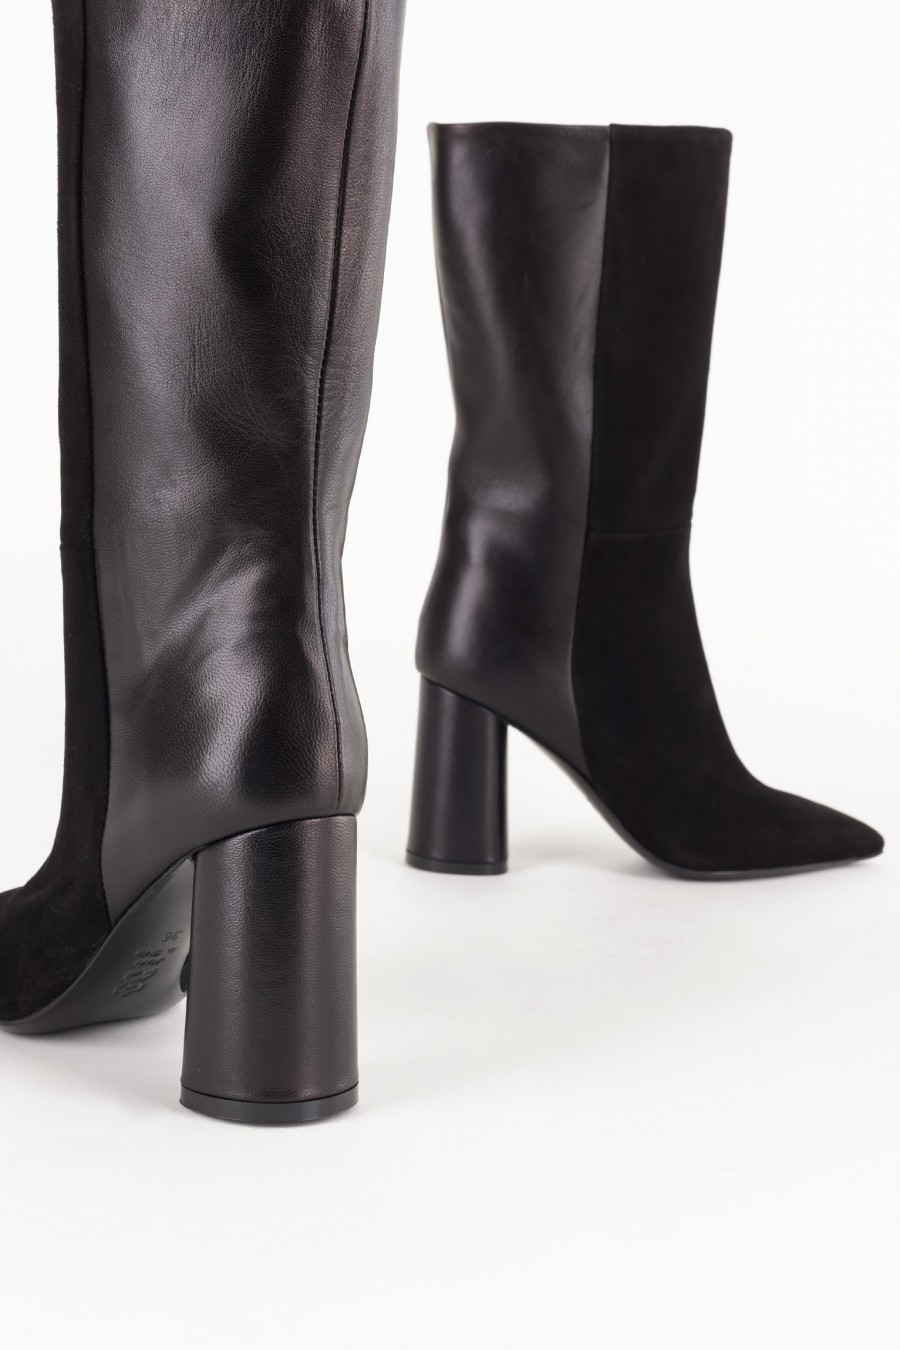 Pointy black boots